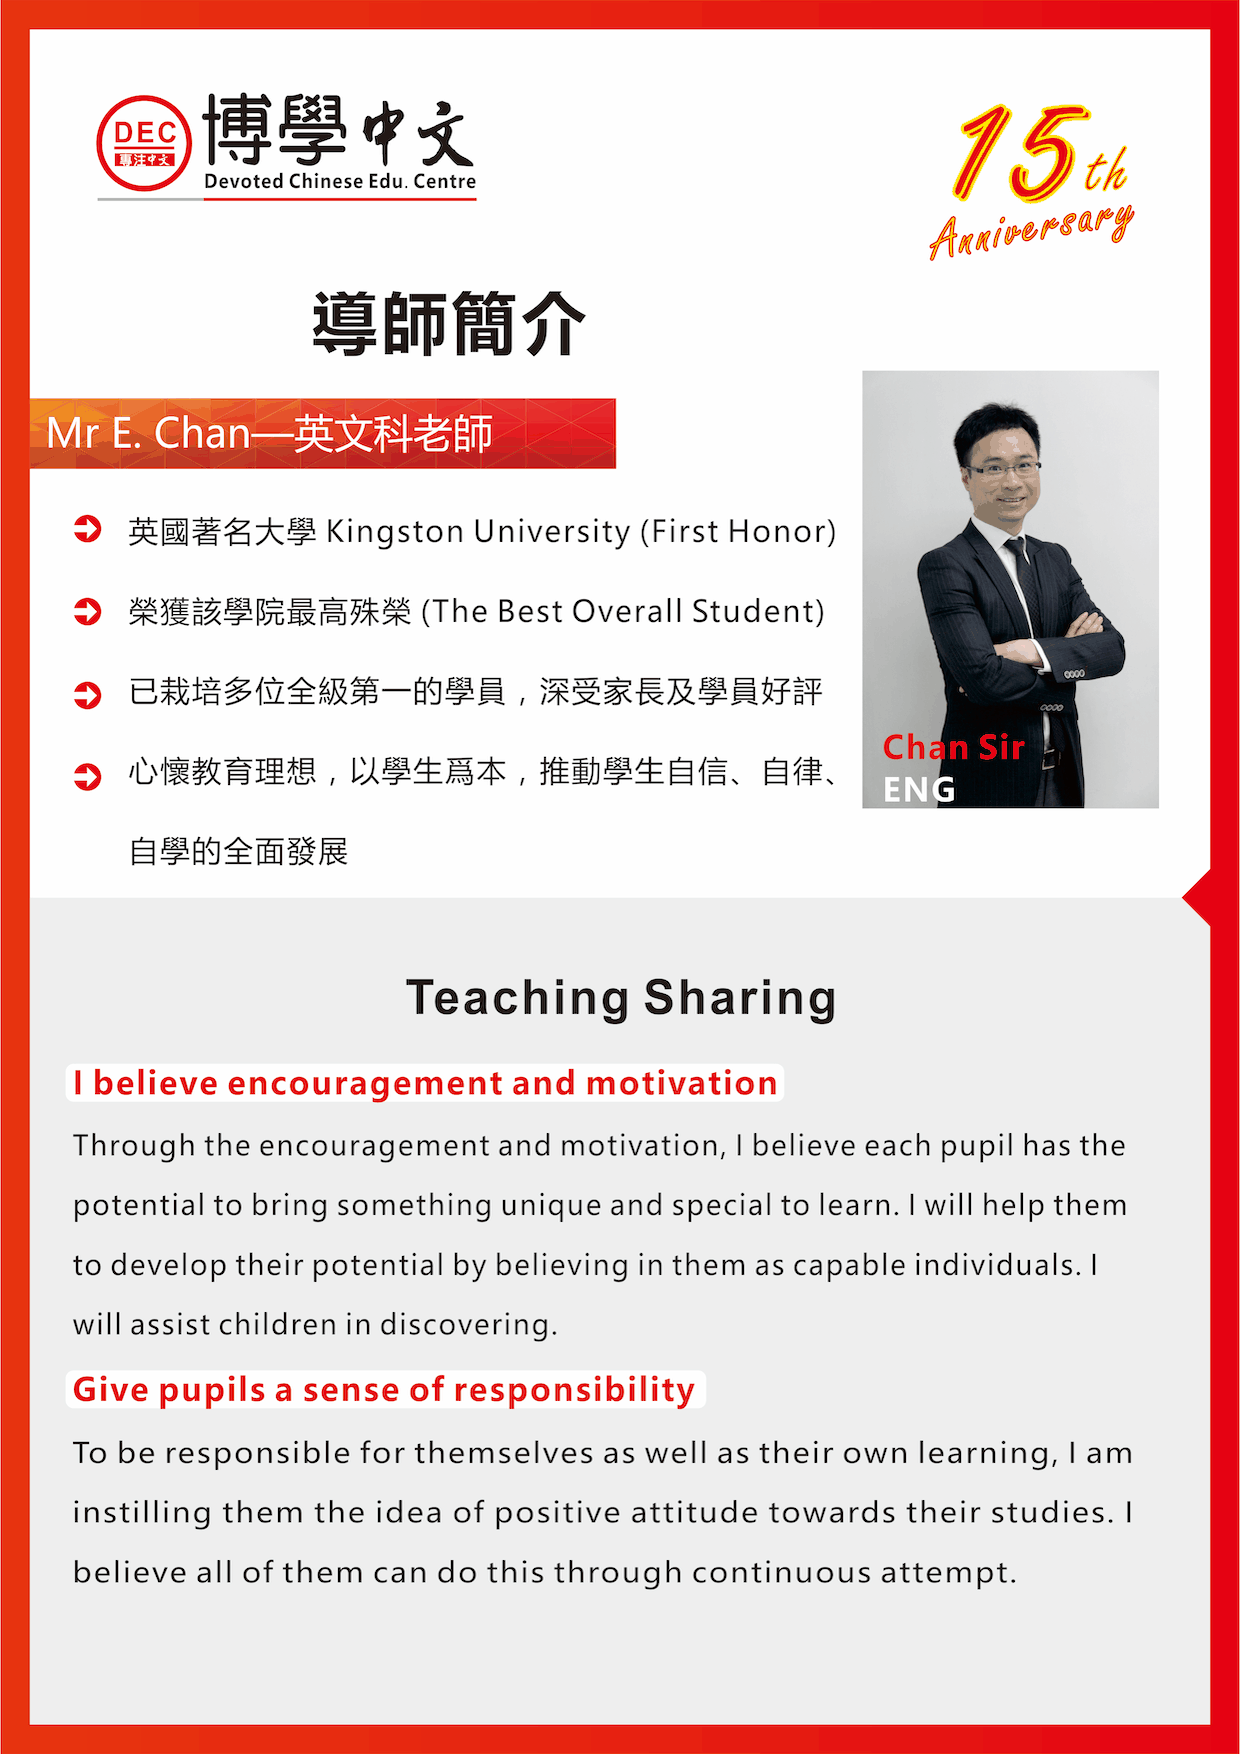 Ethan CHAN Introduction